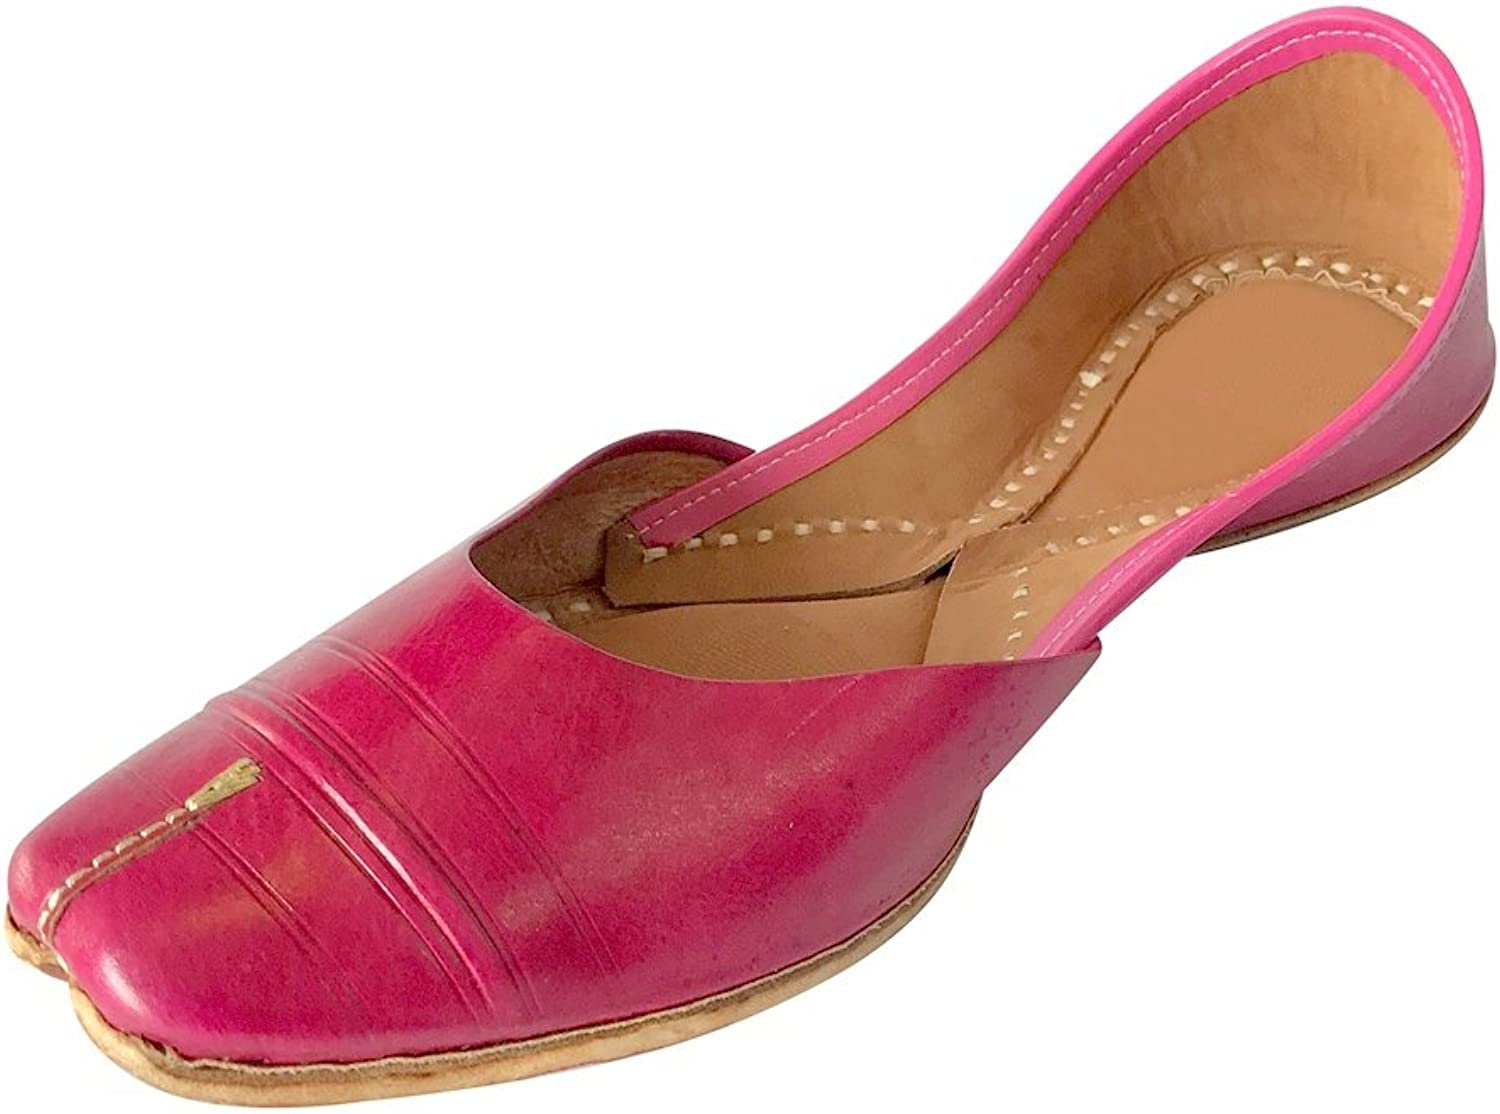 Step n Style Ethnic shoes Beaded shoes Indian shoes Khussa shoes Jutties Ballerina Pink